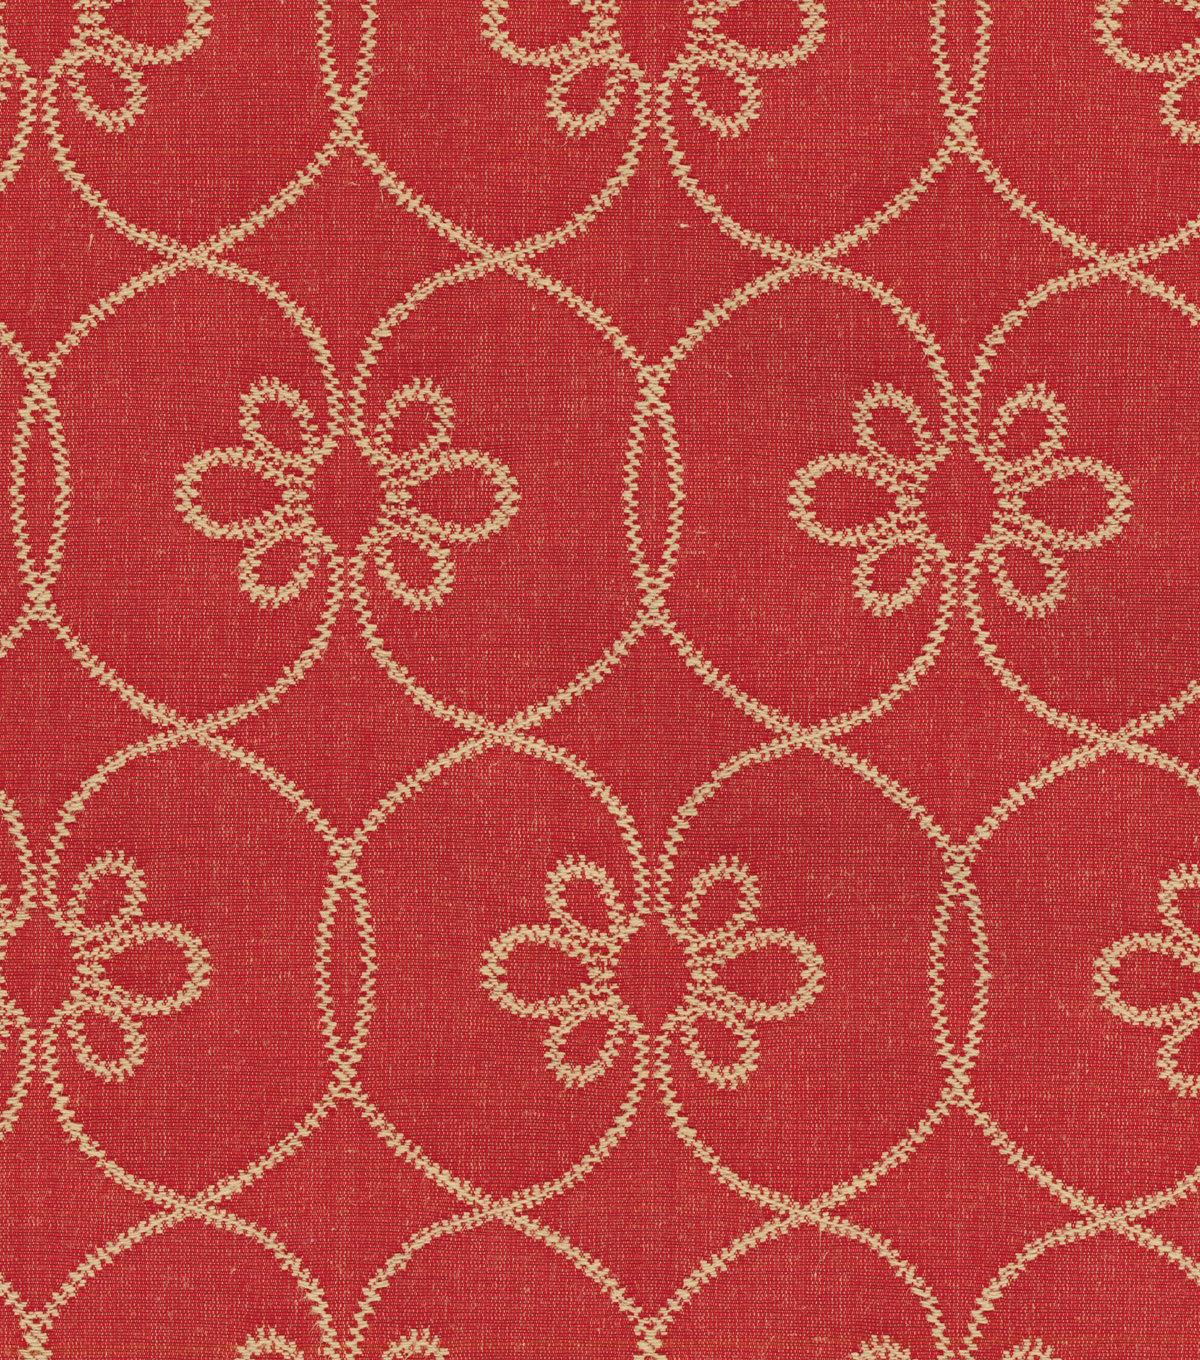 Williamsburg Multi-Purpose Decor Fabric 54\u0022-Delights Bejeweled